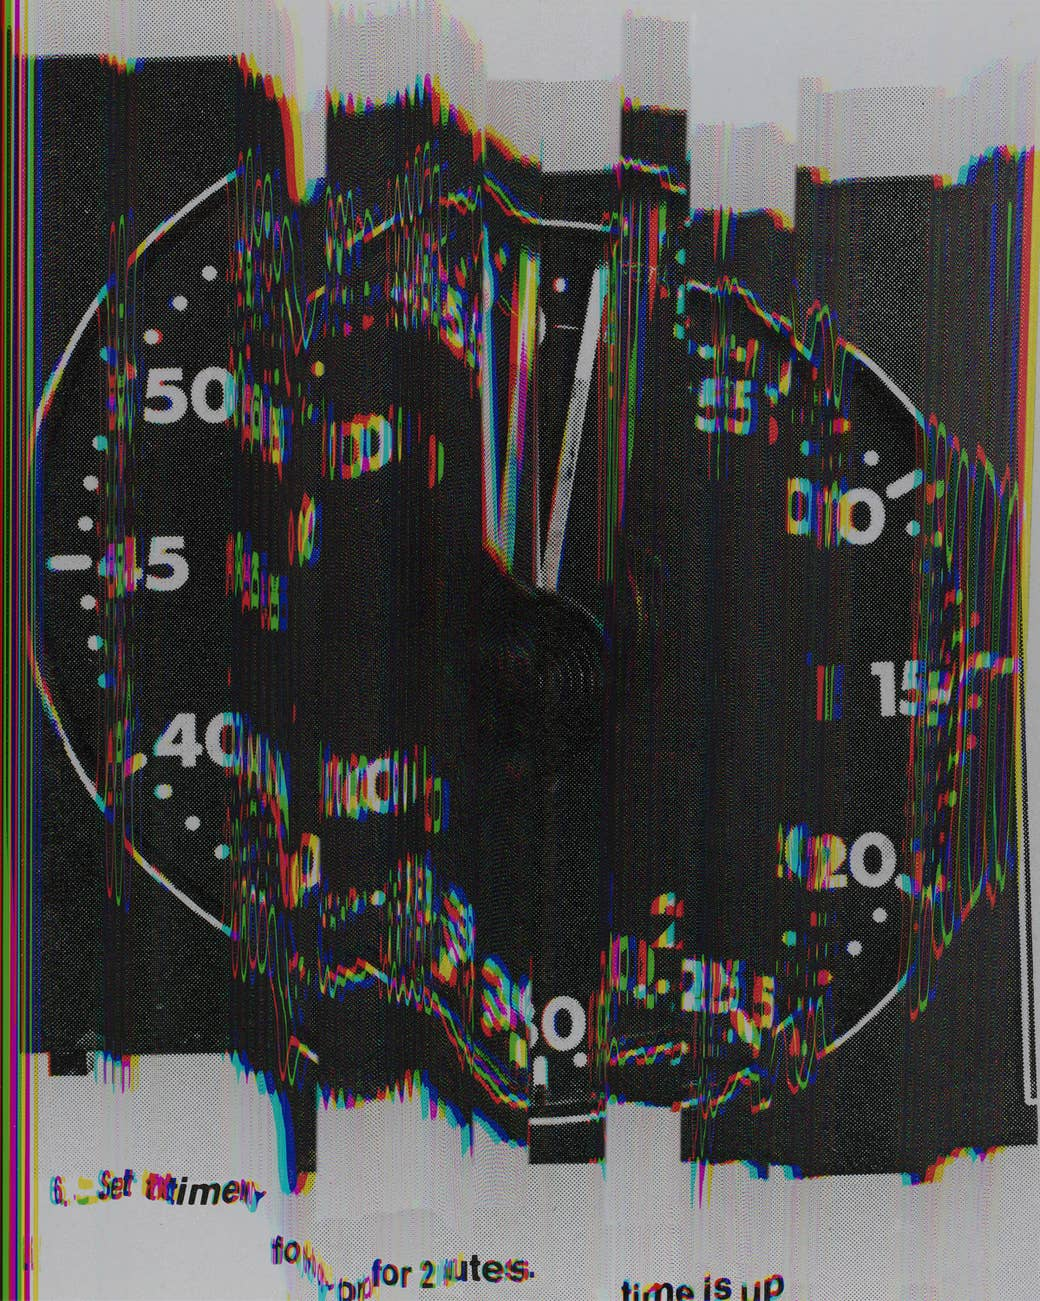 A distorted photo of a speedometer or clock